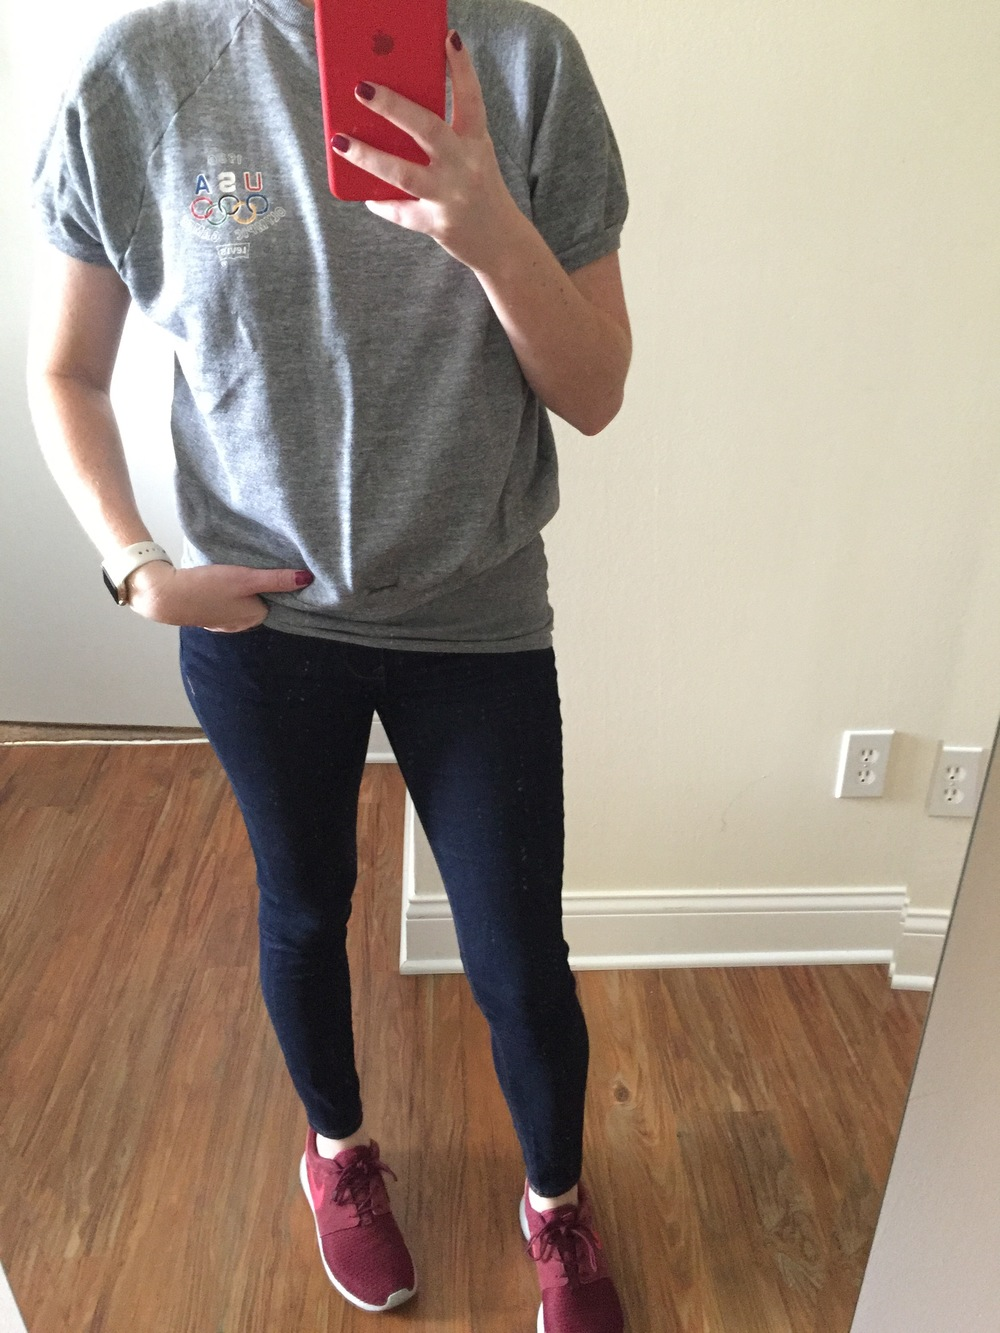 Sweatshirt: Goodwill, Jeans: Express,  Solid Dark Mid Rise Jean Legging , Shoes: Nike, Roshe One